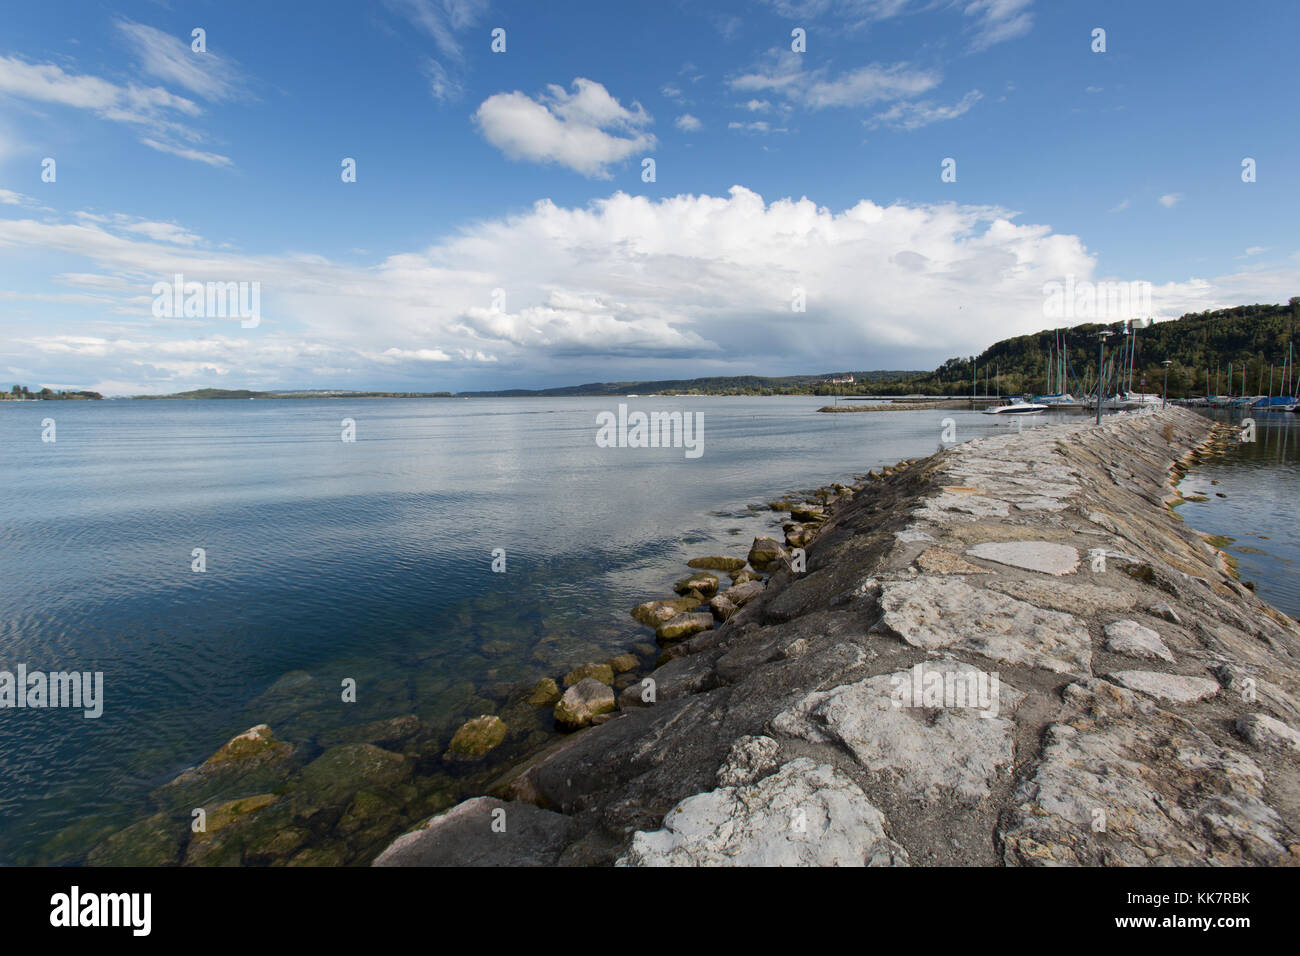 Town of Le Landeron, Switzerland. Picturesque view of Lake Biel with Le Landeron marina breakwater in the foreground. - Stock Image